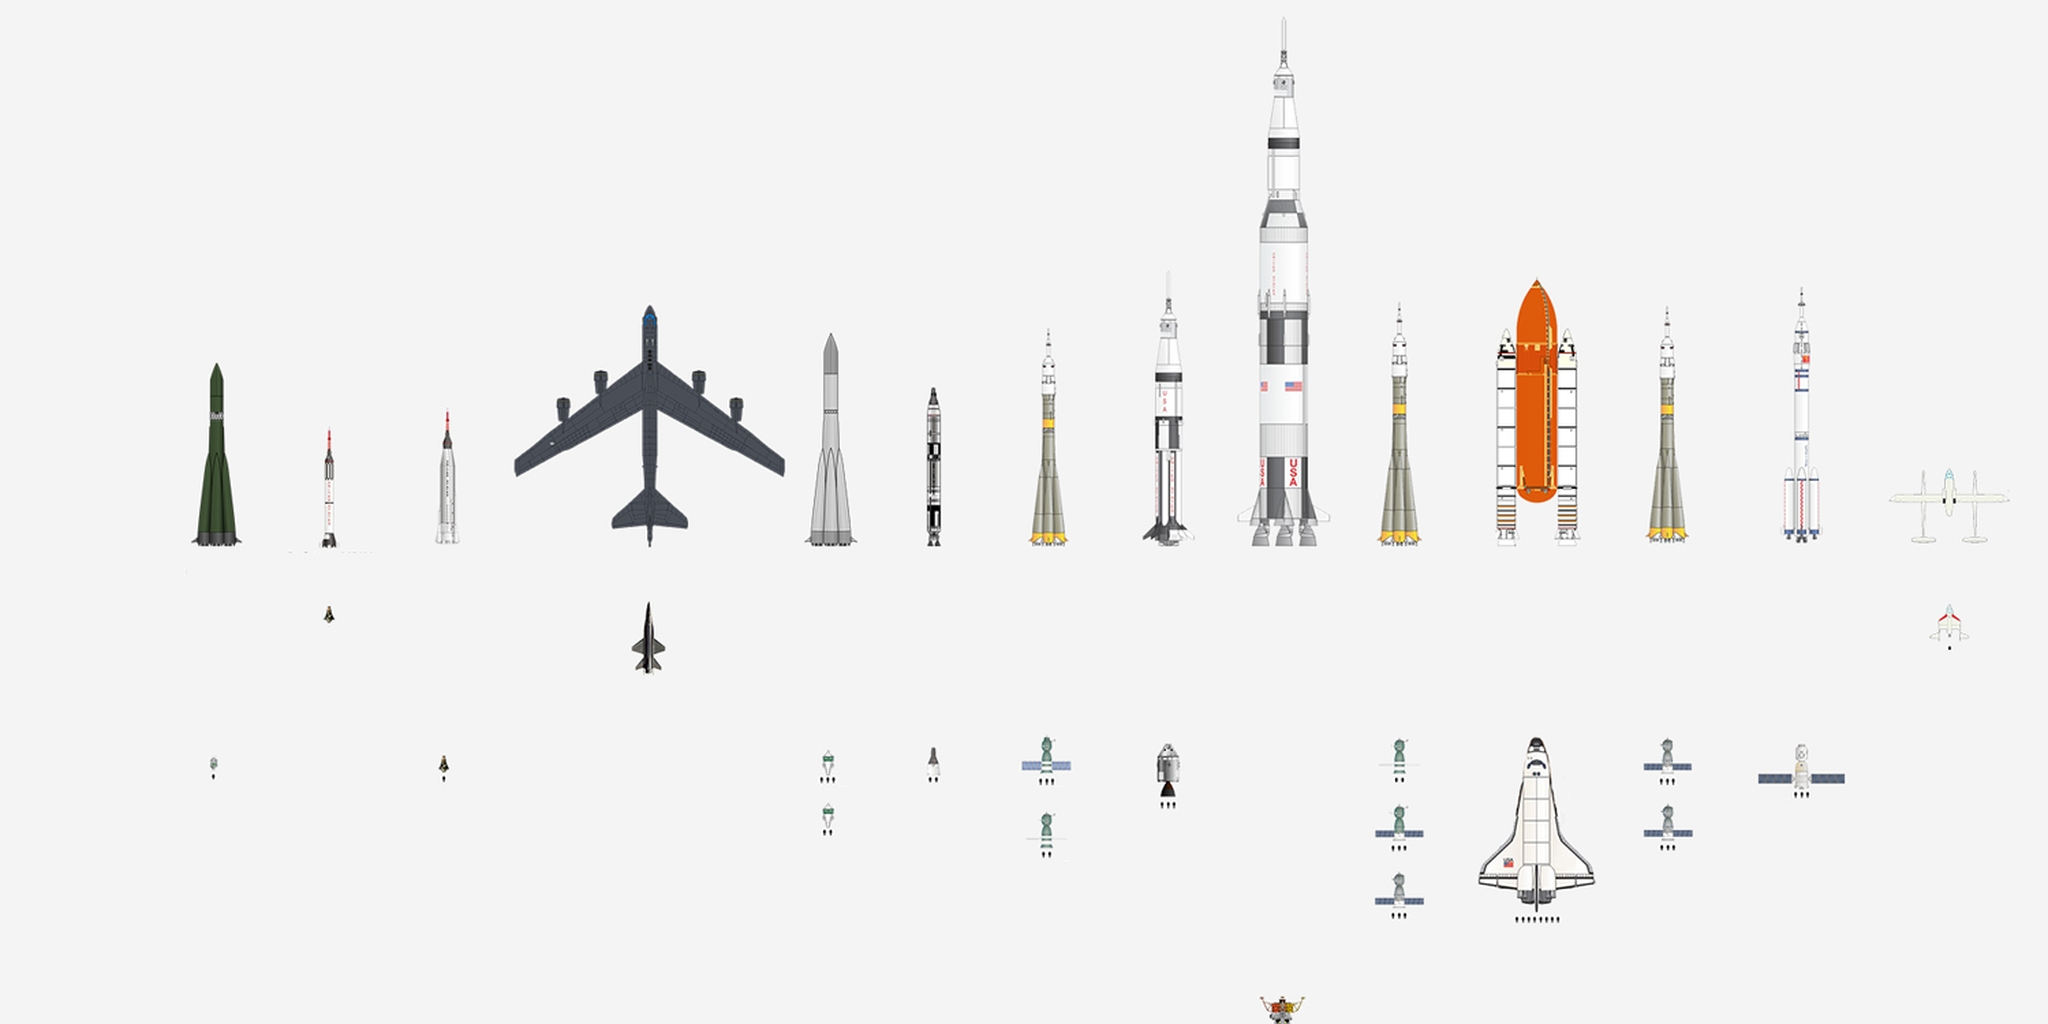 Here S What Every Manned Spacecraft In History Looks Like